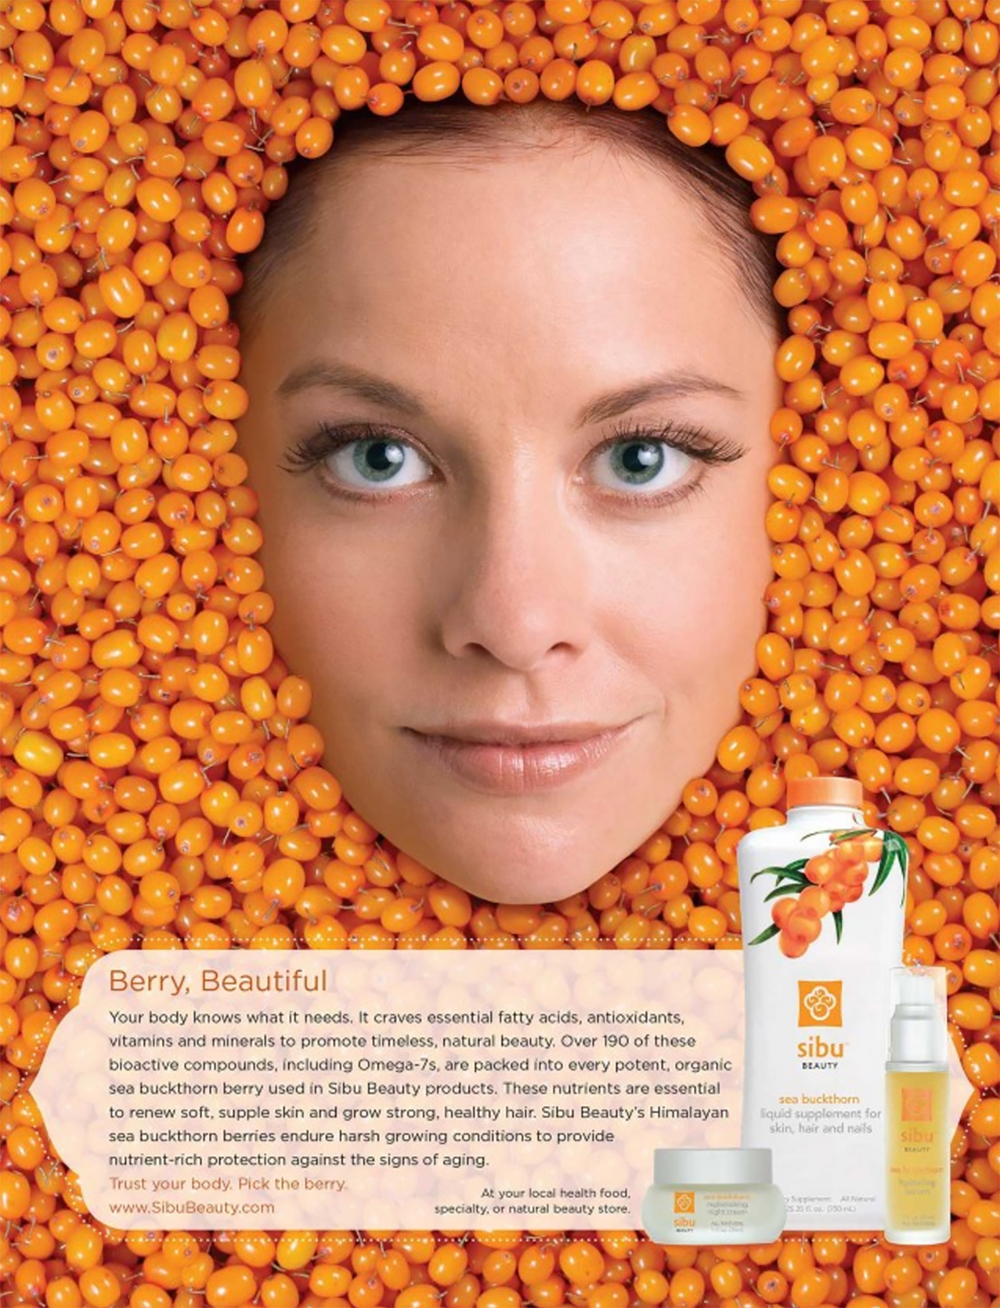 Sibu   Striking ads helped Sibu grow their market share after the merits of sea buckthorn hit the Dr. Oz show. New Ink worked with BrandHive to develop the concept and wrote ad headers and copy.